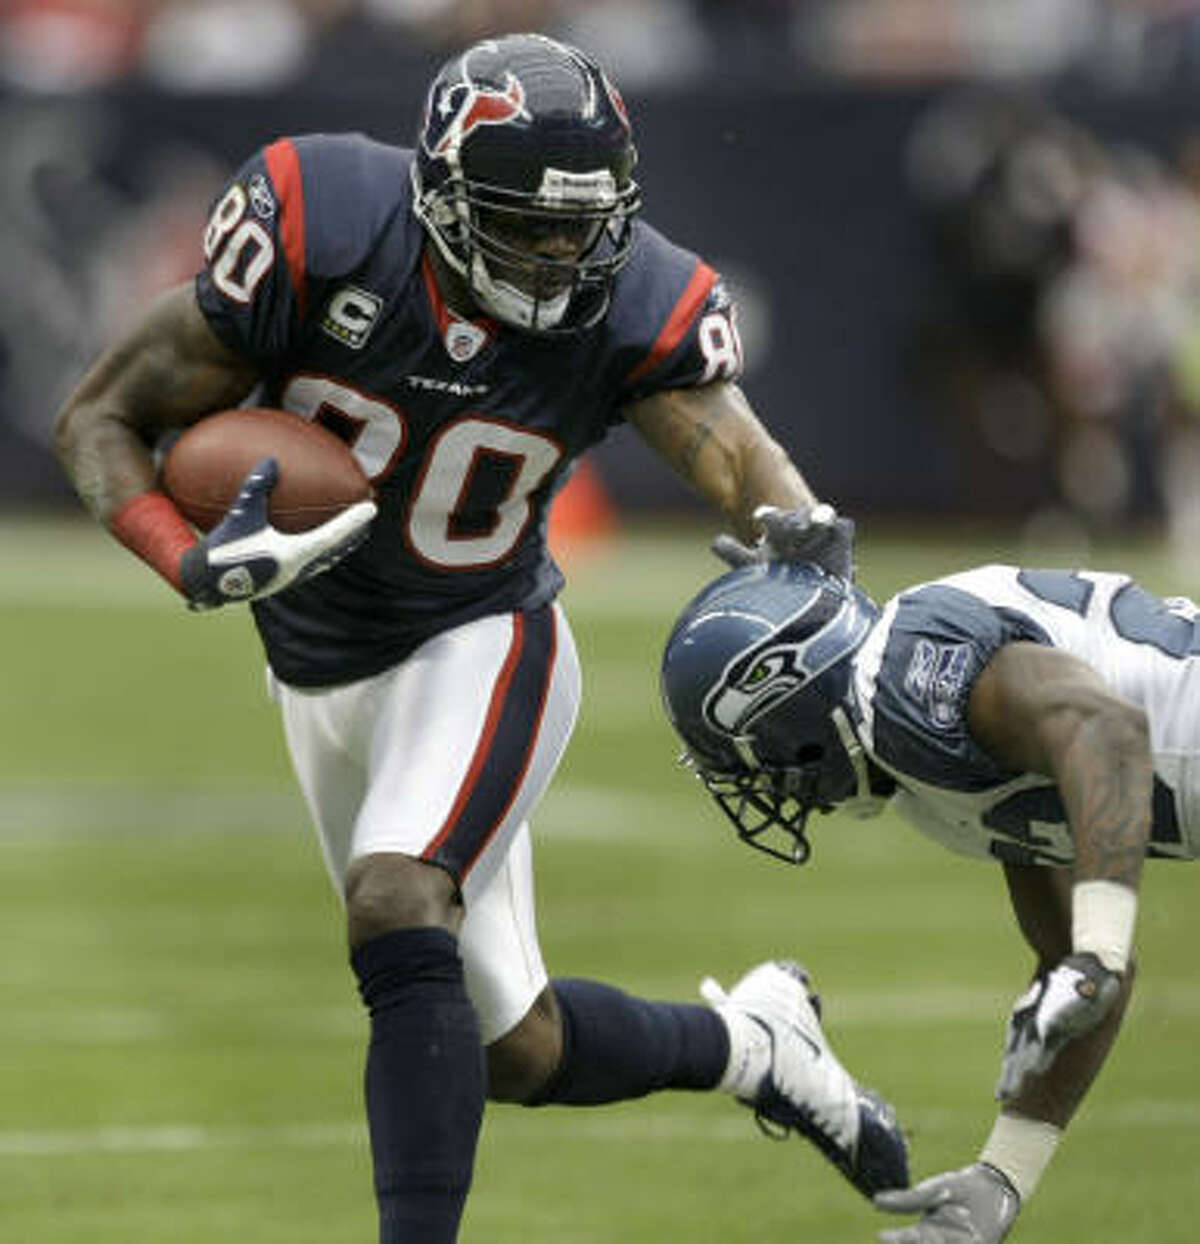 Texans wide receiver Andre Johnson has been selected to the Pro Bowl in four of his seven NFL seasons.